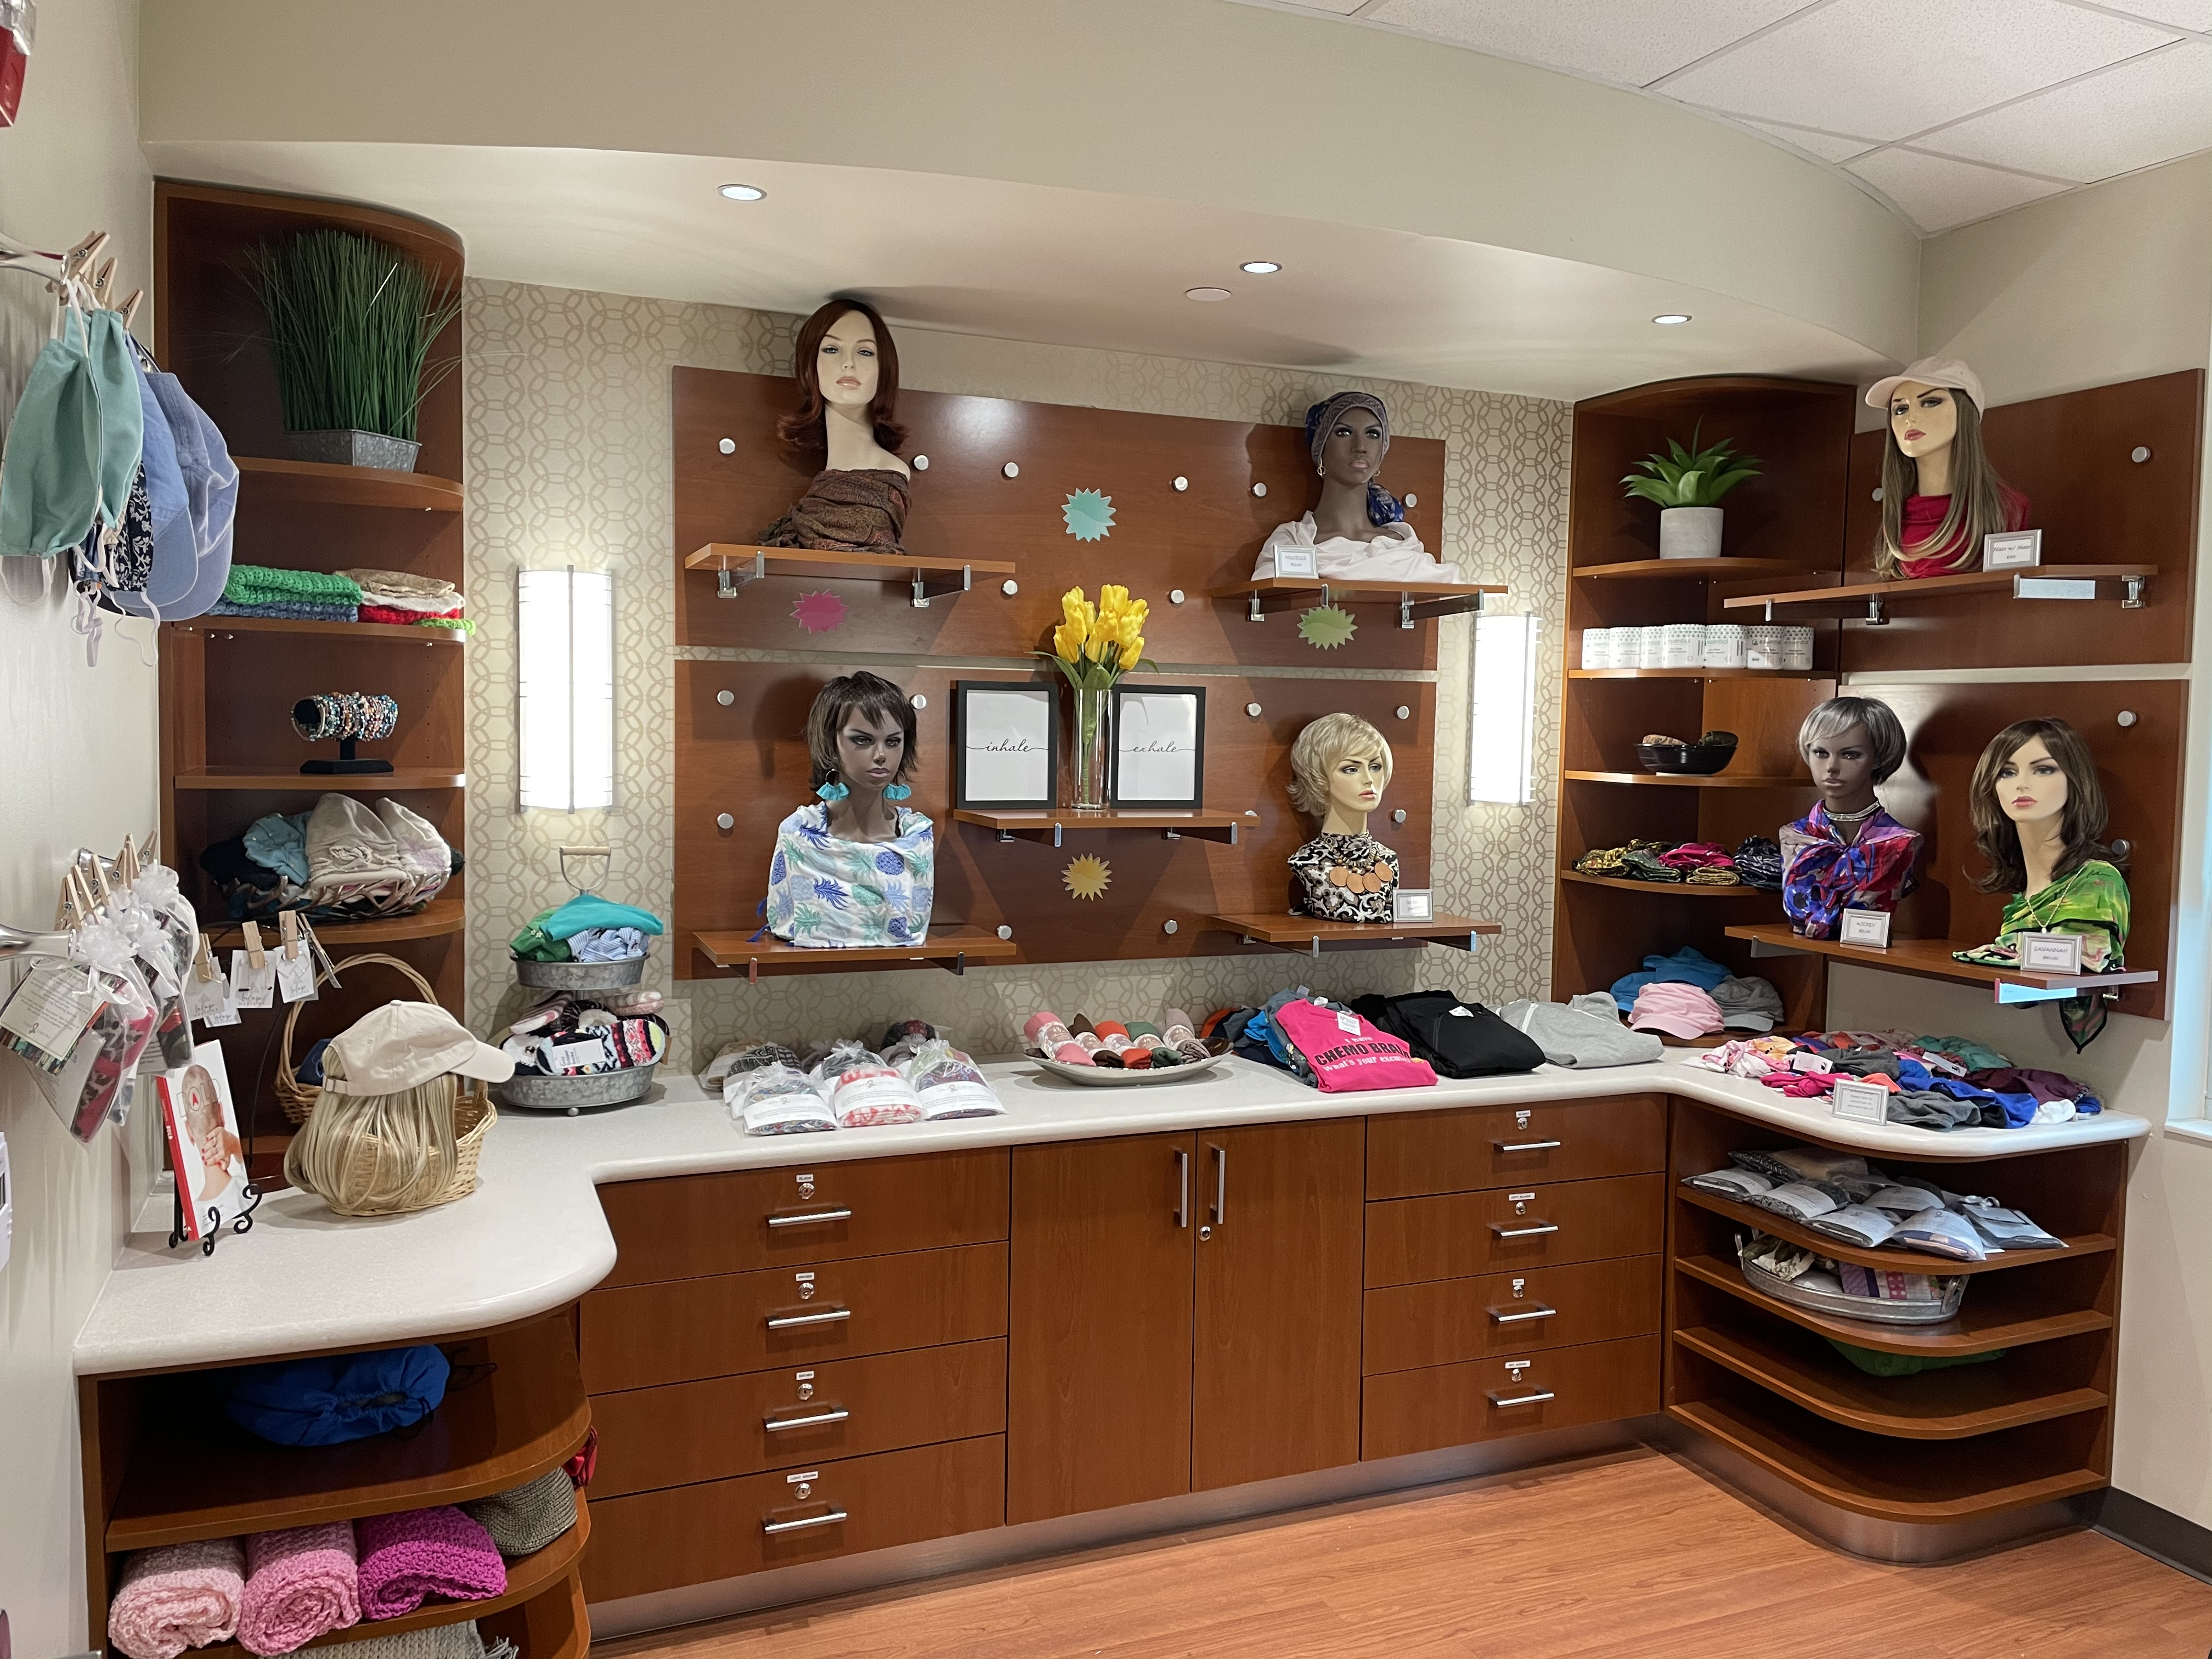 A boutique for wigs and other cancer care needs